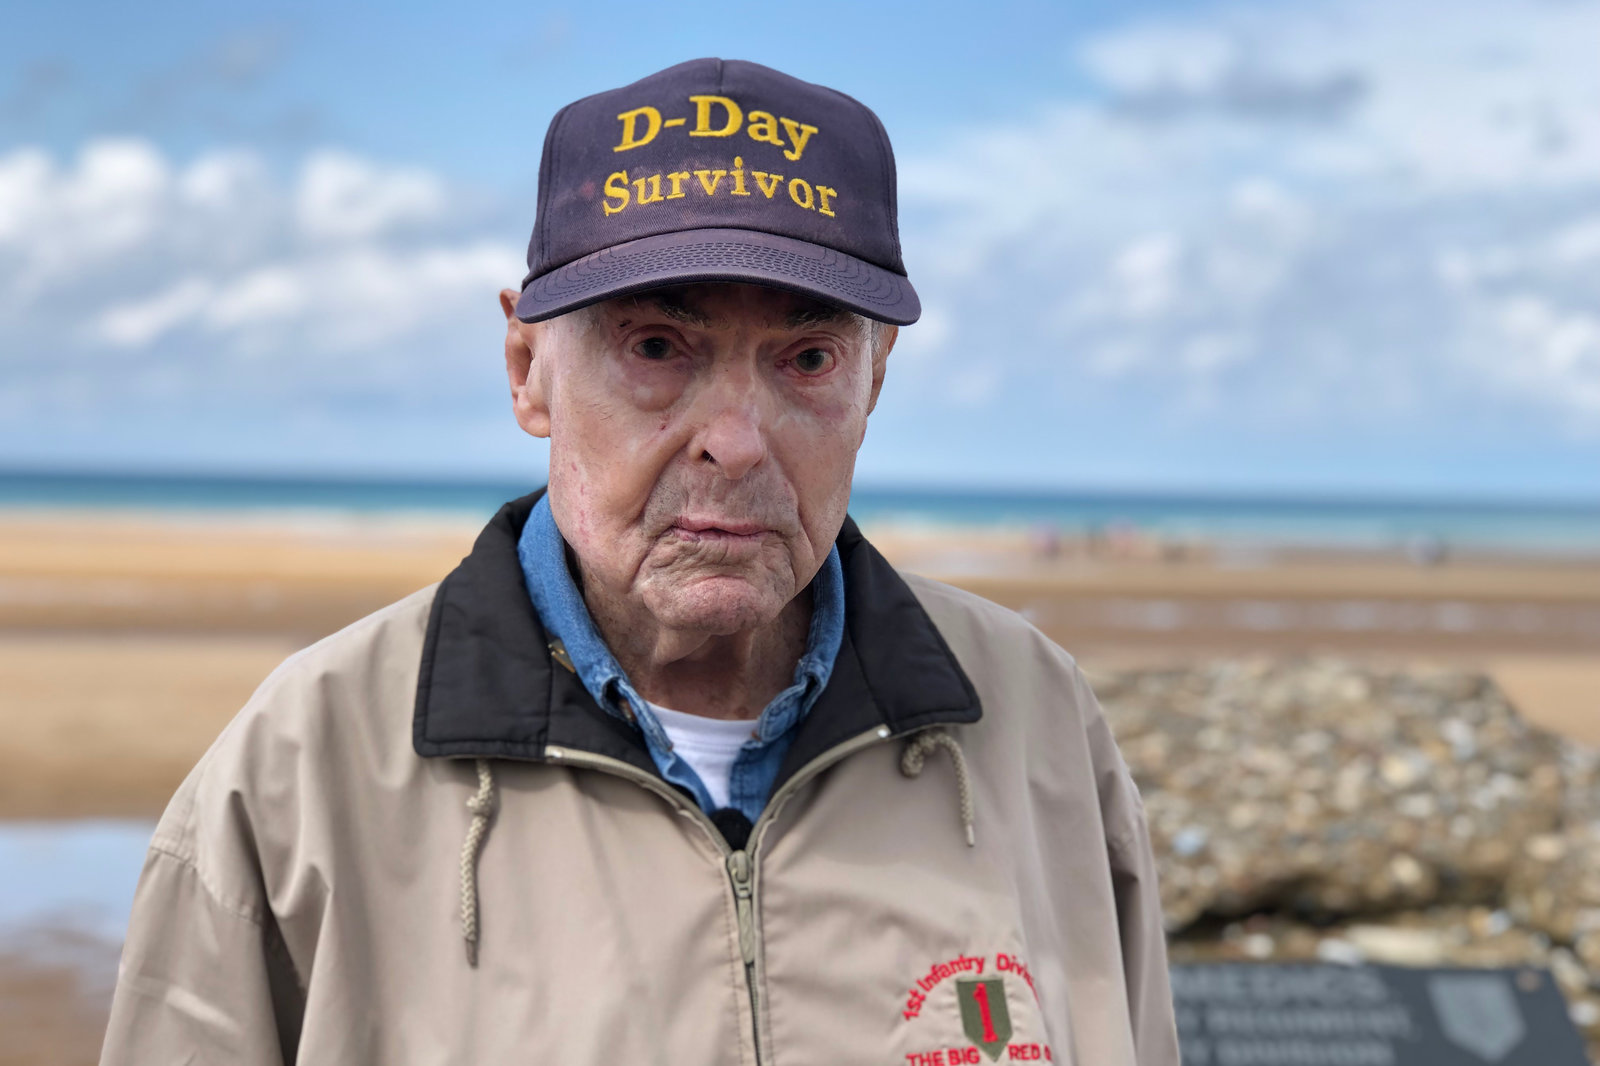 Ray Lambert, 98, stands on Omaha Beach, where 75 years ago, he fought during the D-Day invasion. Photo: Eleanor Beardsley/NPR